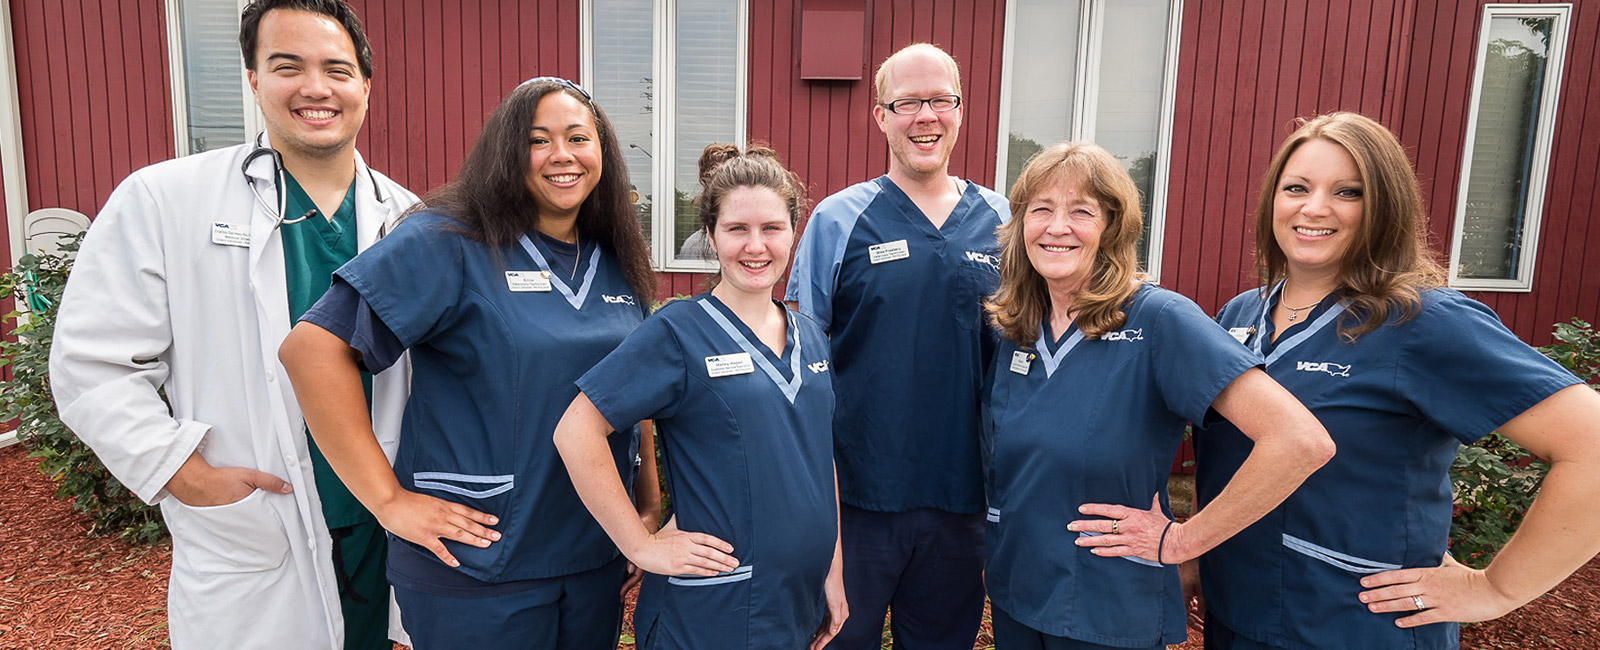 Team Picture of VCA Elkton Animal Hospital